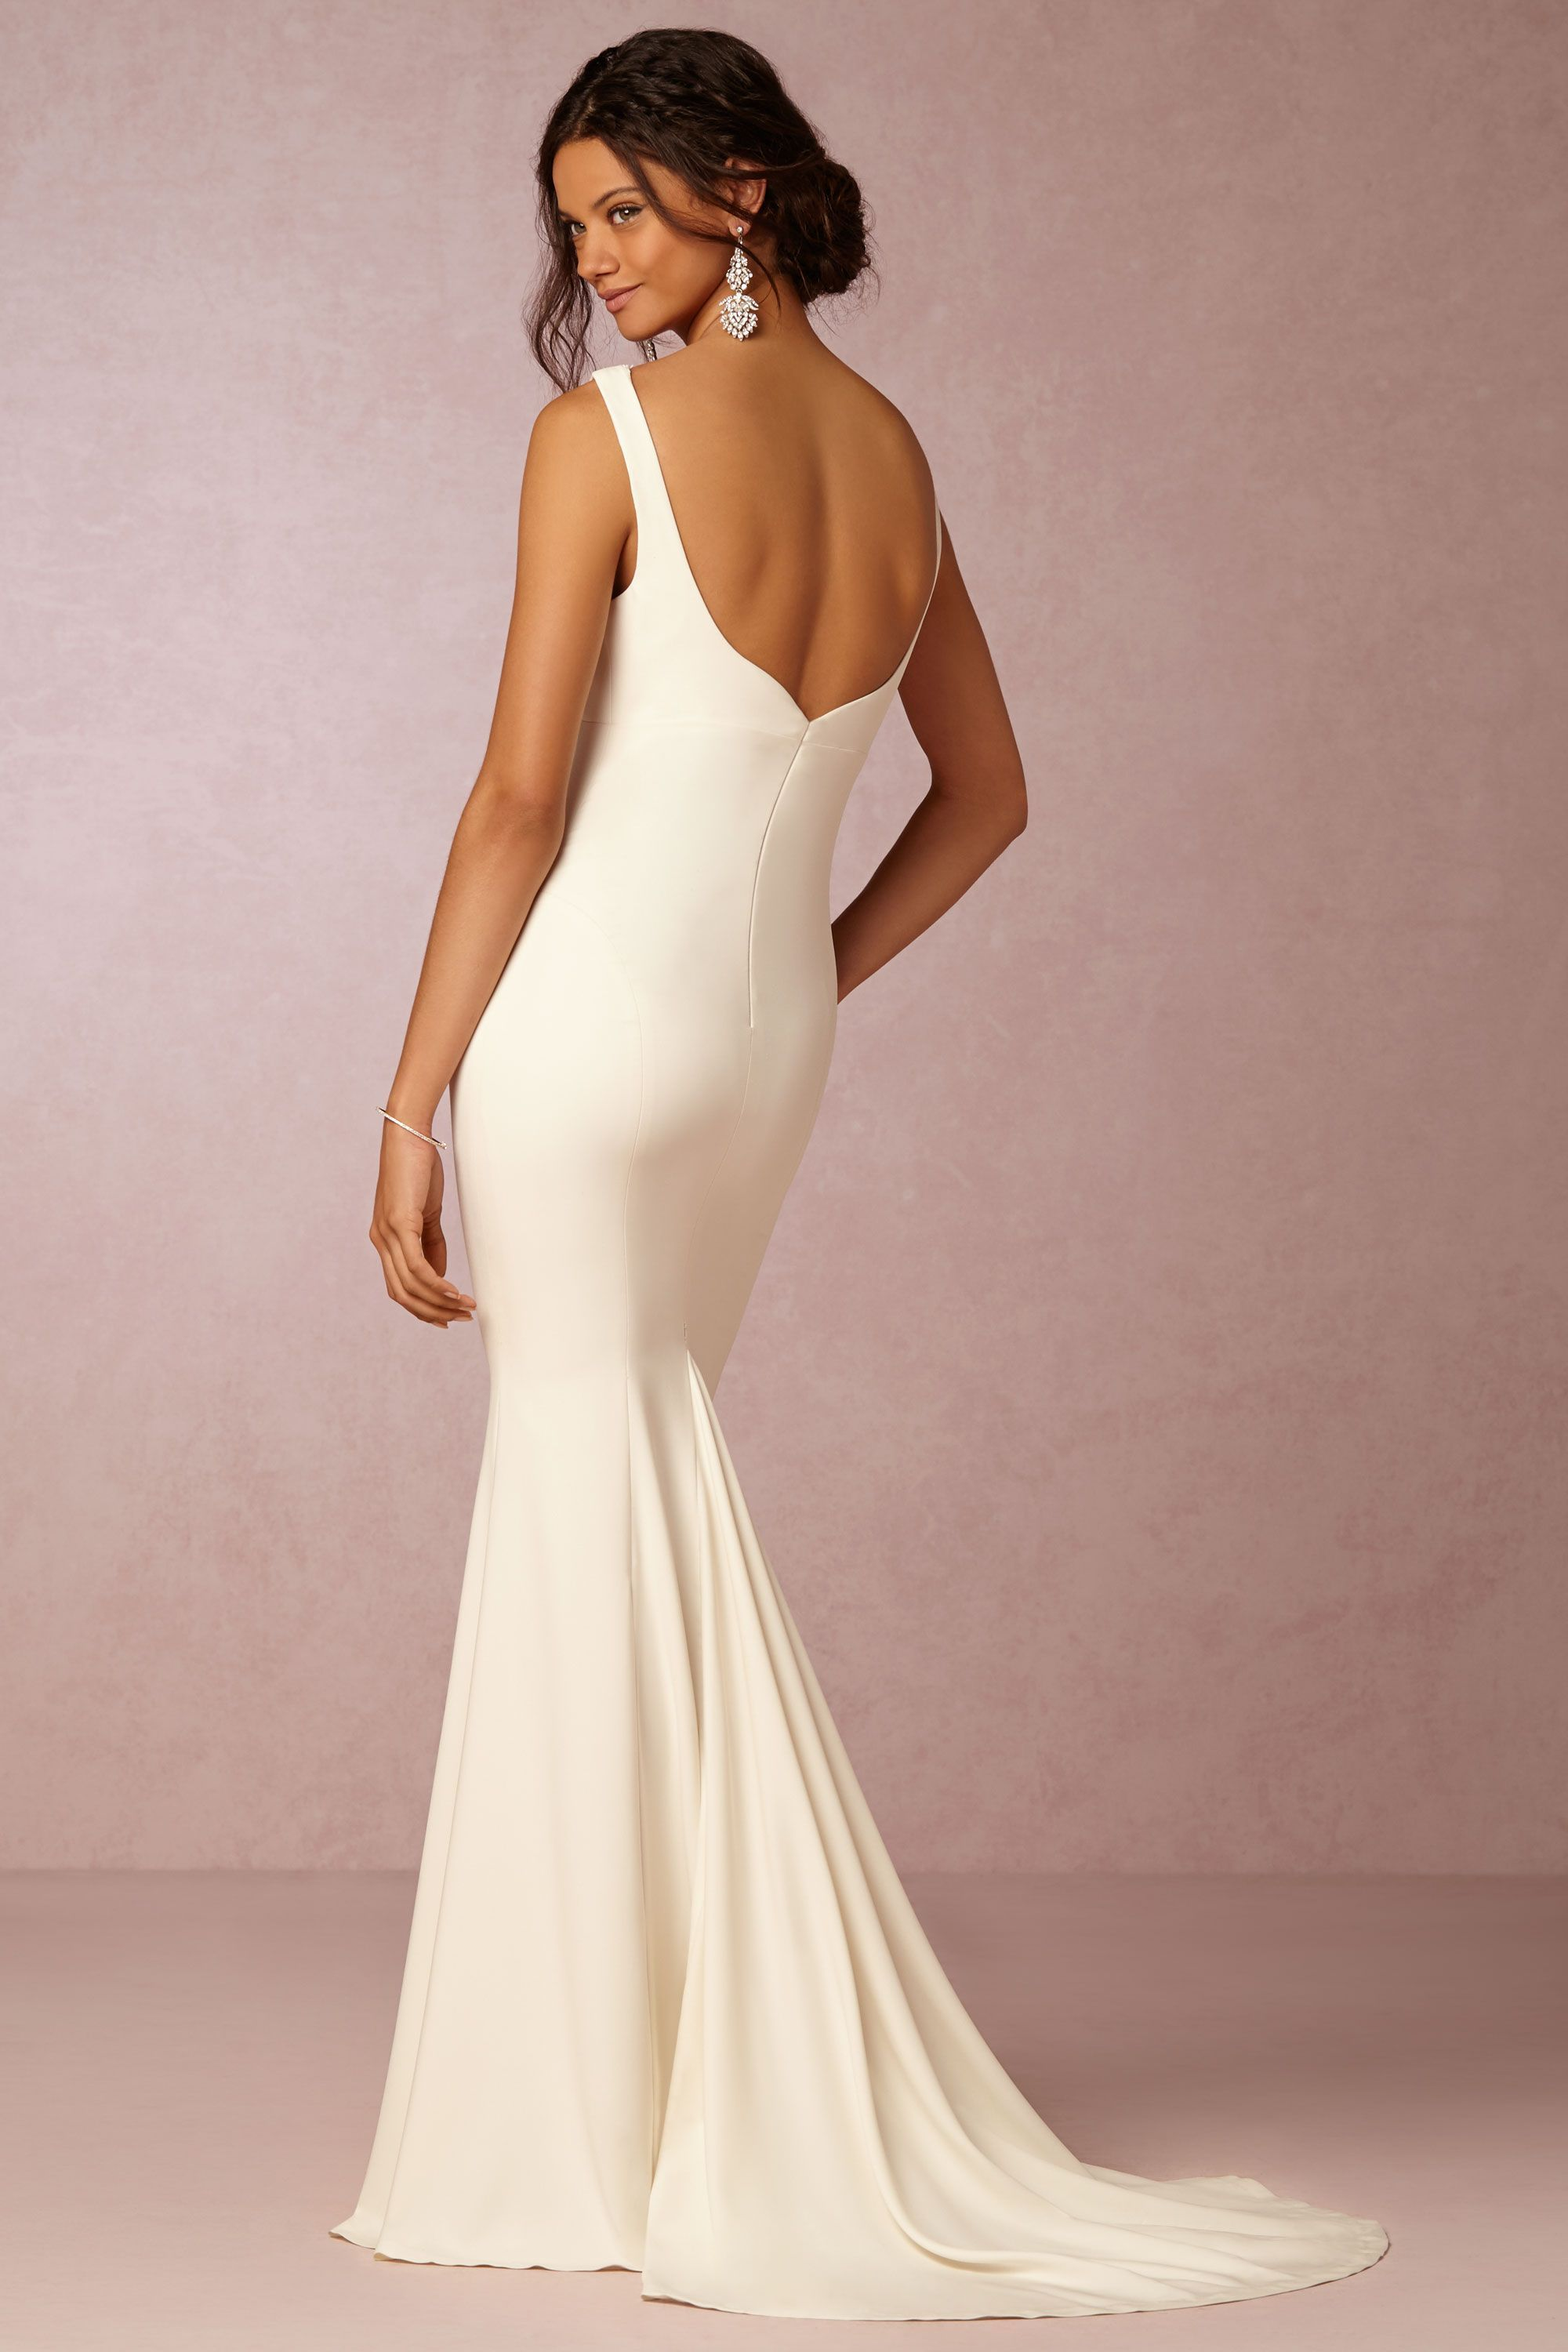 Timeless wedding dresses  This classic wedding dress option from Nicole Miller features a